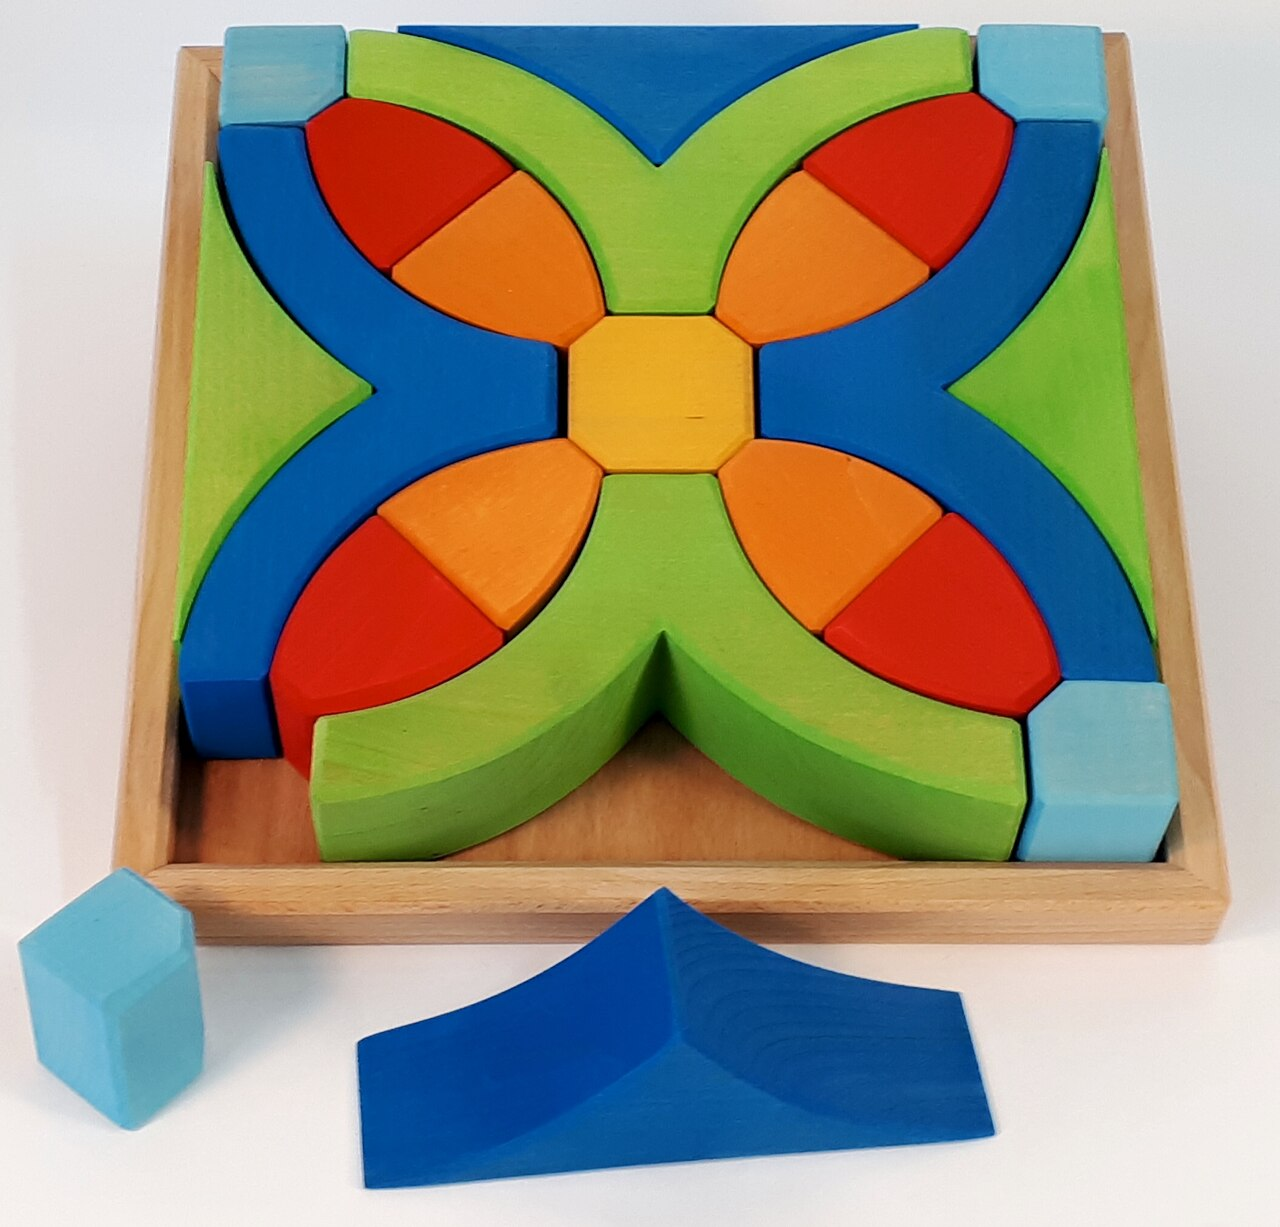 Bauspiel -Y Puzzle Wooden Block Set